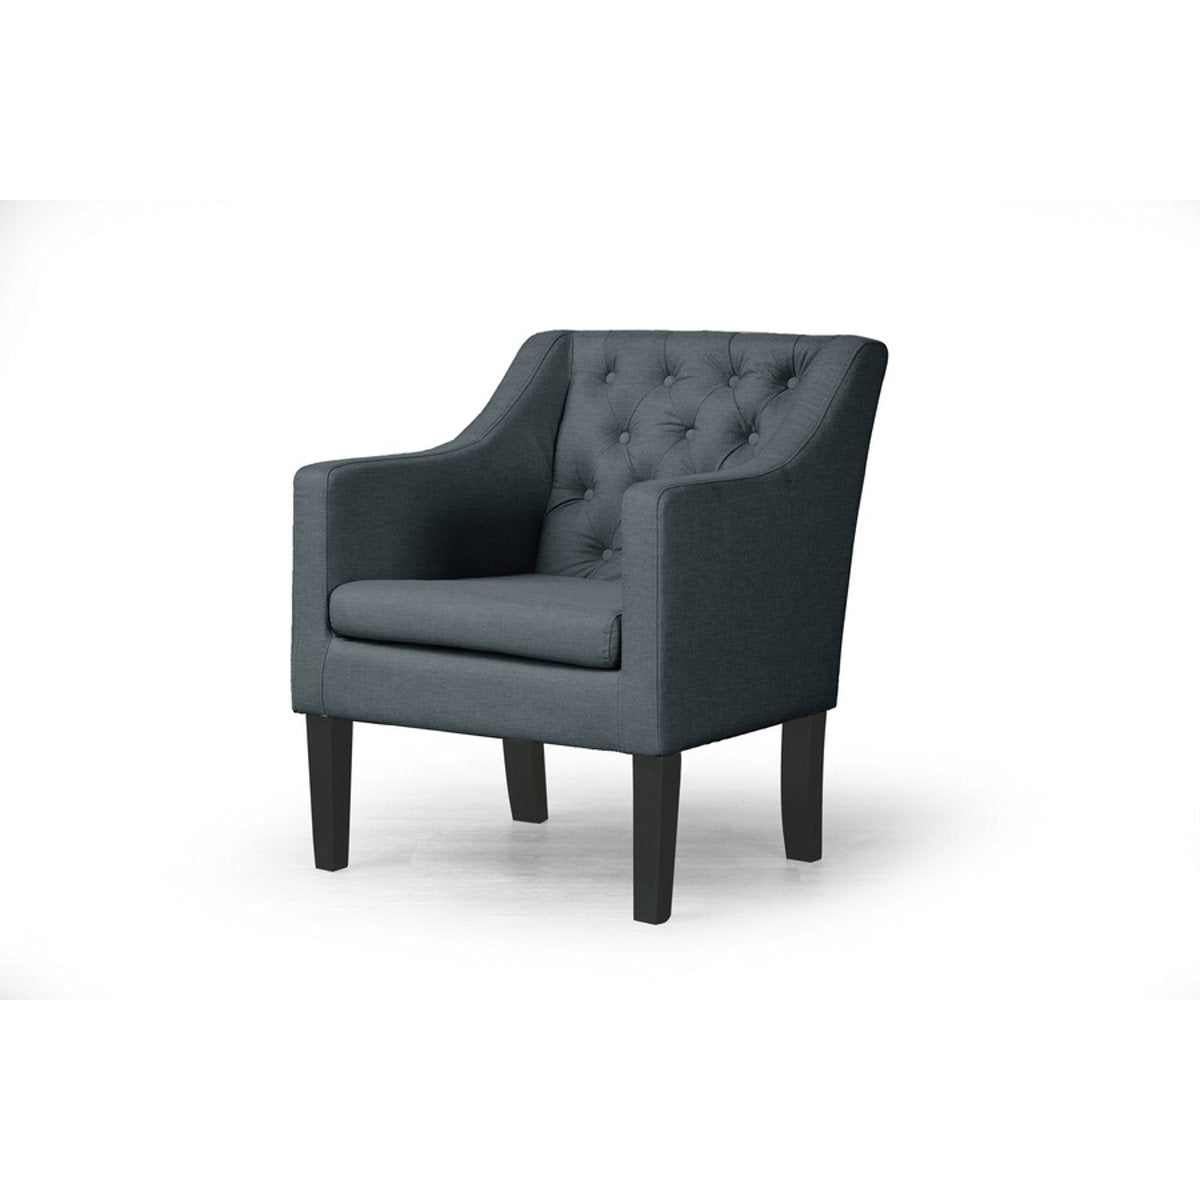 Baxton Studio Brittany Club Chair Baxton Studio-chairs-Minimal And Modern - 1